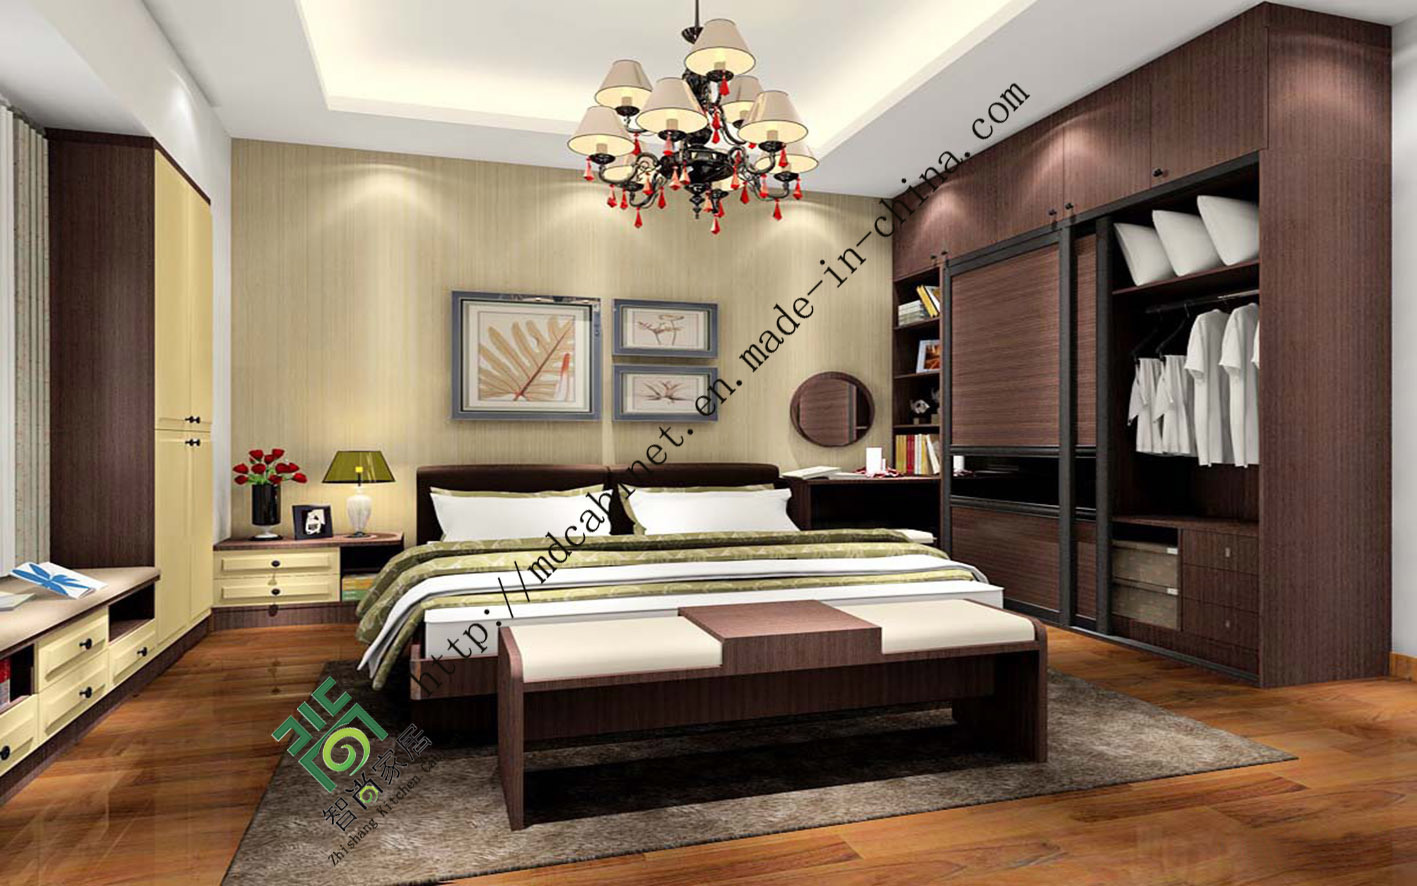 2017 nouvelle chambre coucher mobilier de style style naturaliste 03 photo sur fr made in. Black Bedroom Furniture Sets. Home Design Ideas